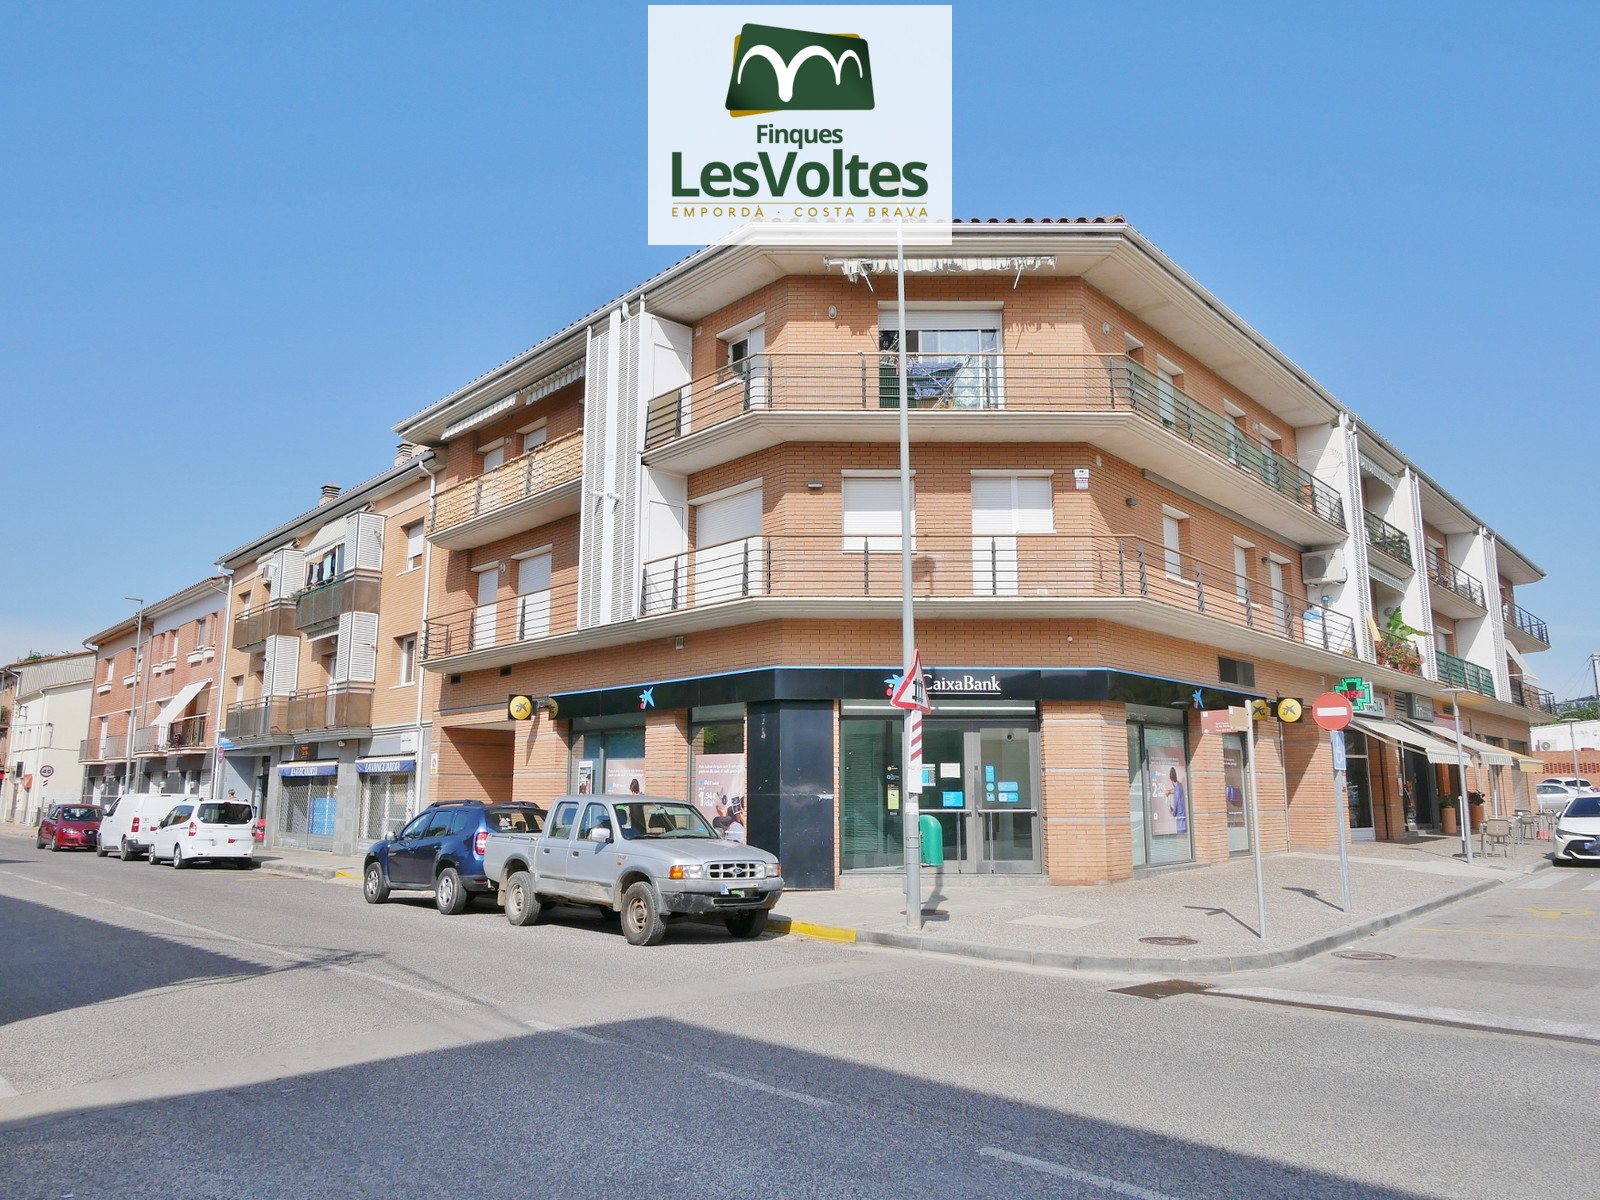 CENTRAL APARTMENT OF 69 M2 ON THE FIRST FLOOR WITH ELEVATOR, PARKING AND STORAGE ROOM FOR SALE IN FLAÇÀ.